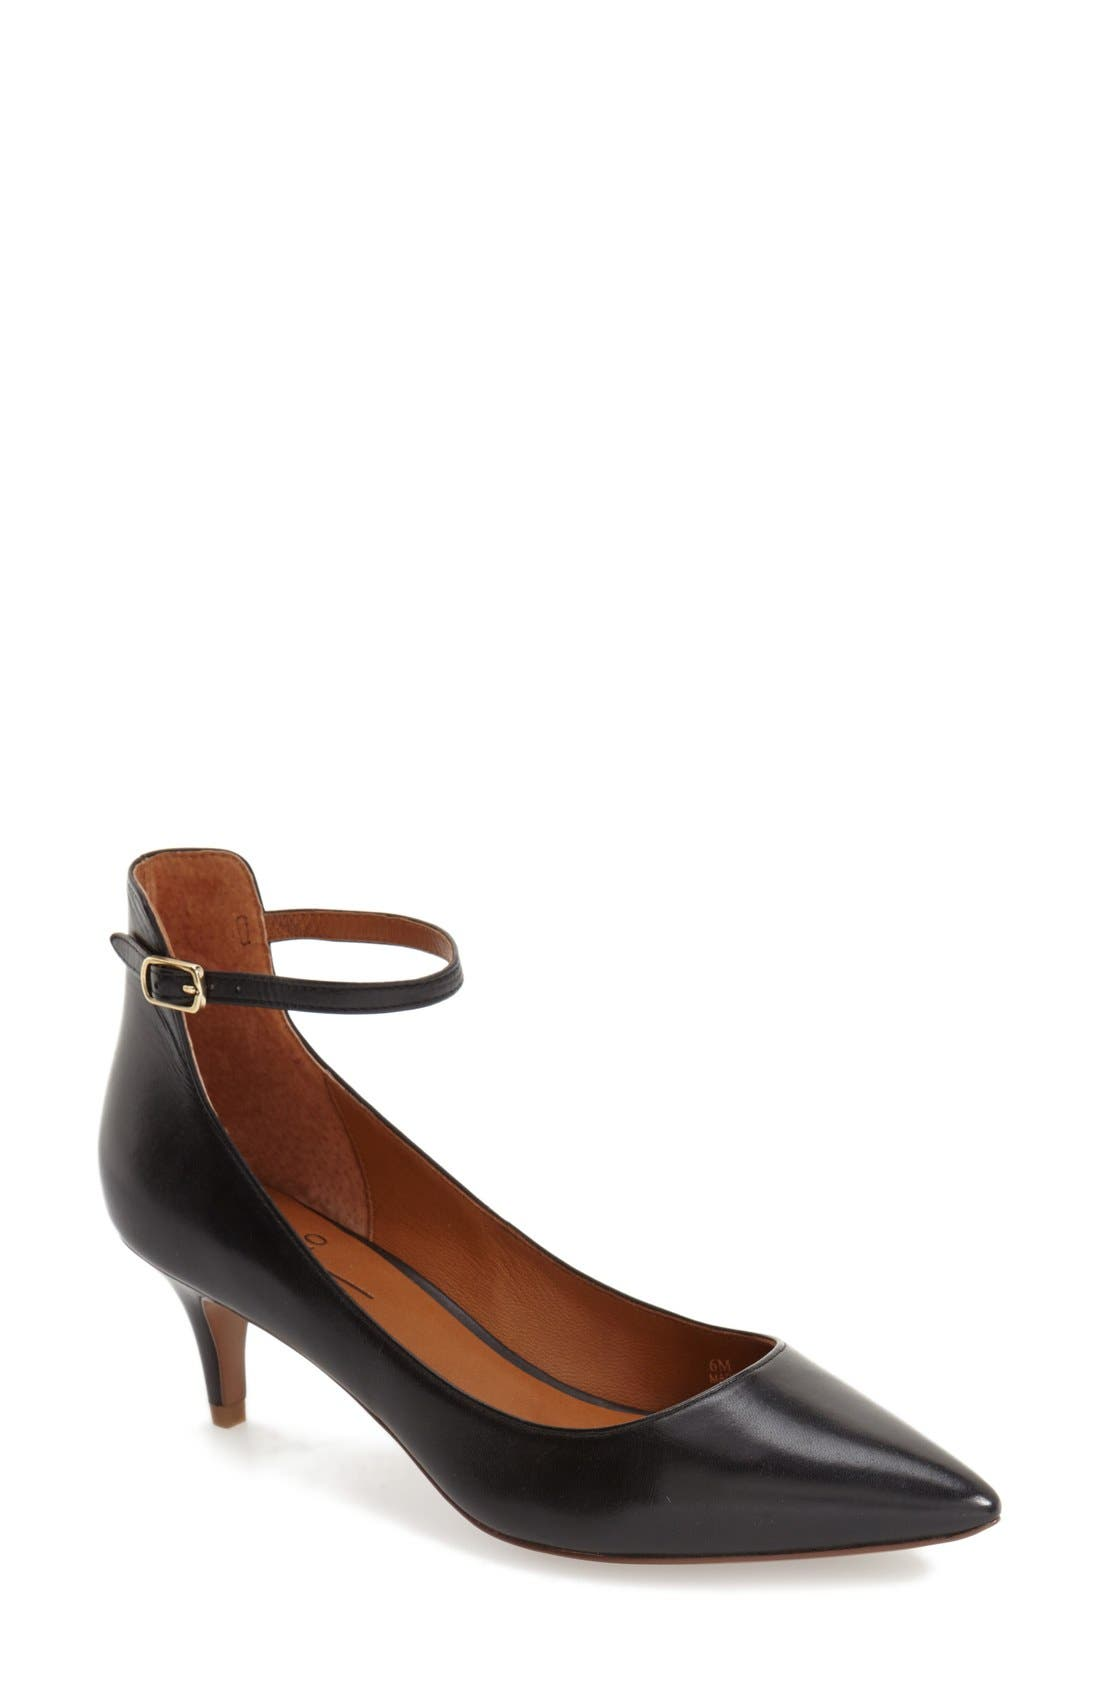 'Cutie' Ankle Strap Pointy Toe Pump,                             Main thumbnail 1, color,